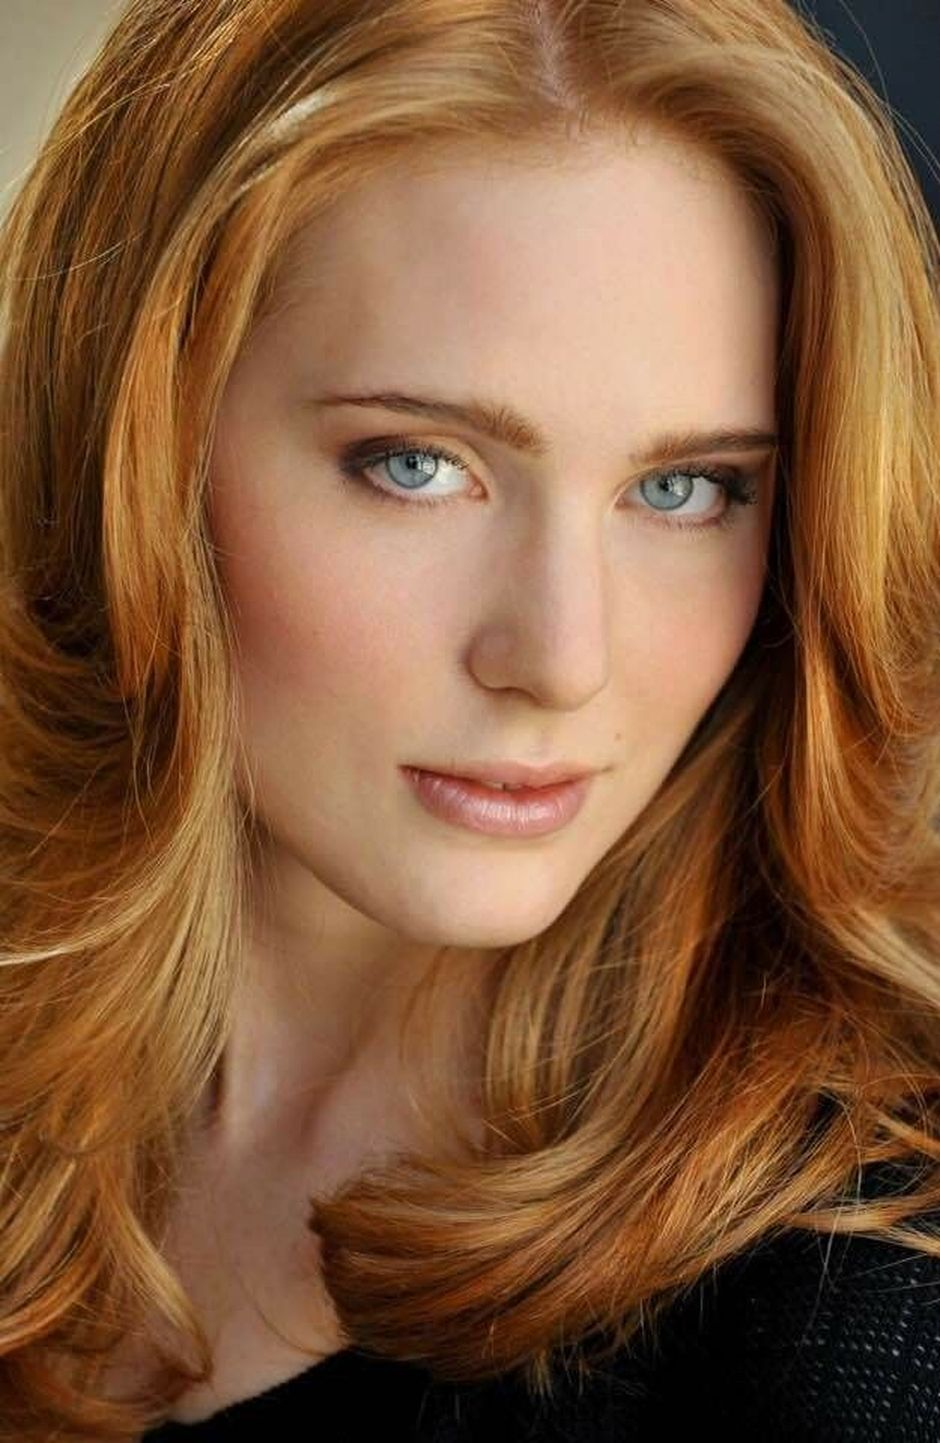 Awesome Hottest Redheads Will Make You Look Beautiful and Stunning 61